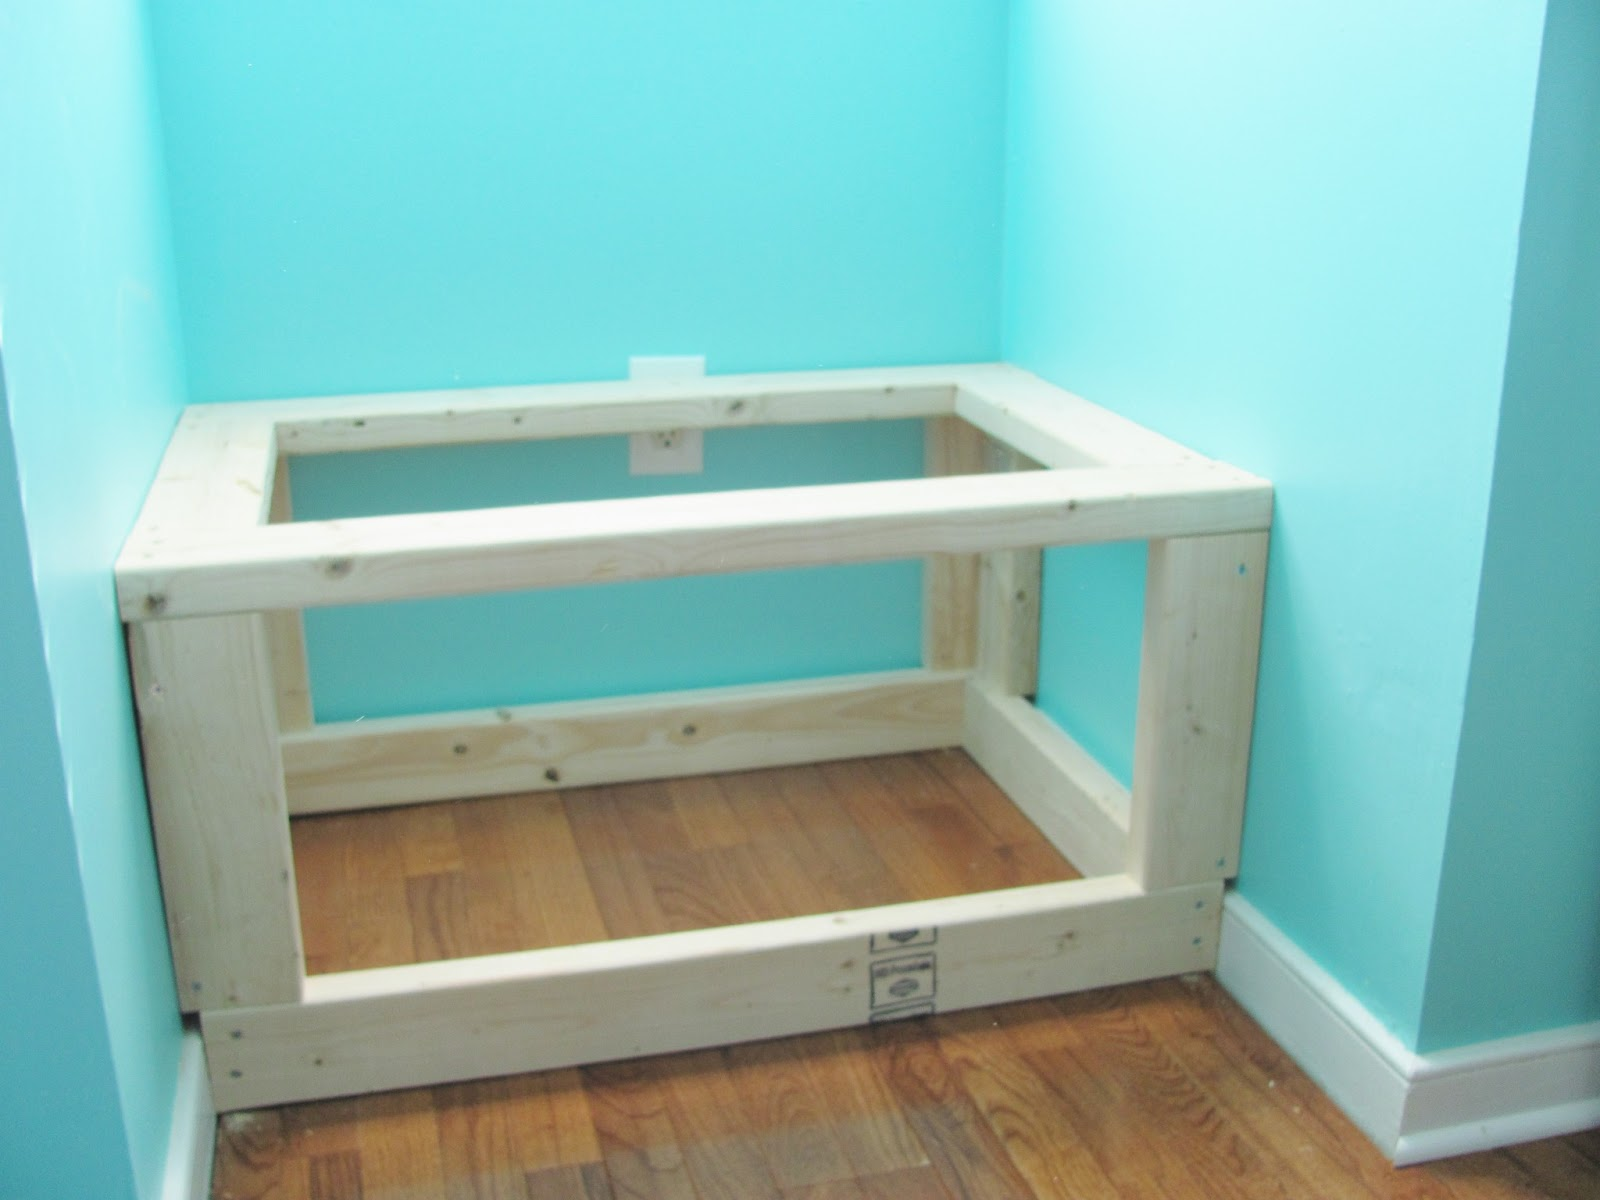 ... In Bench Seat With Storage Plans Download built in bench seat plans